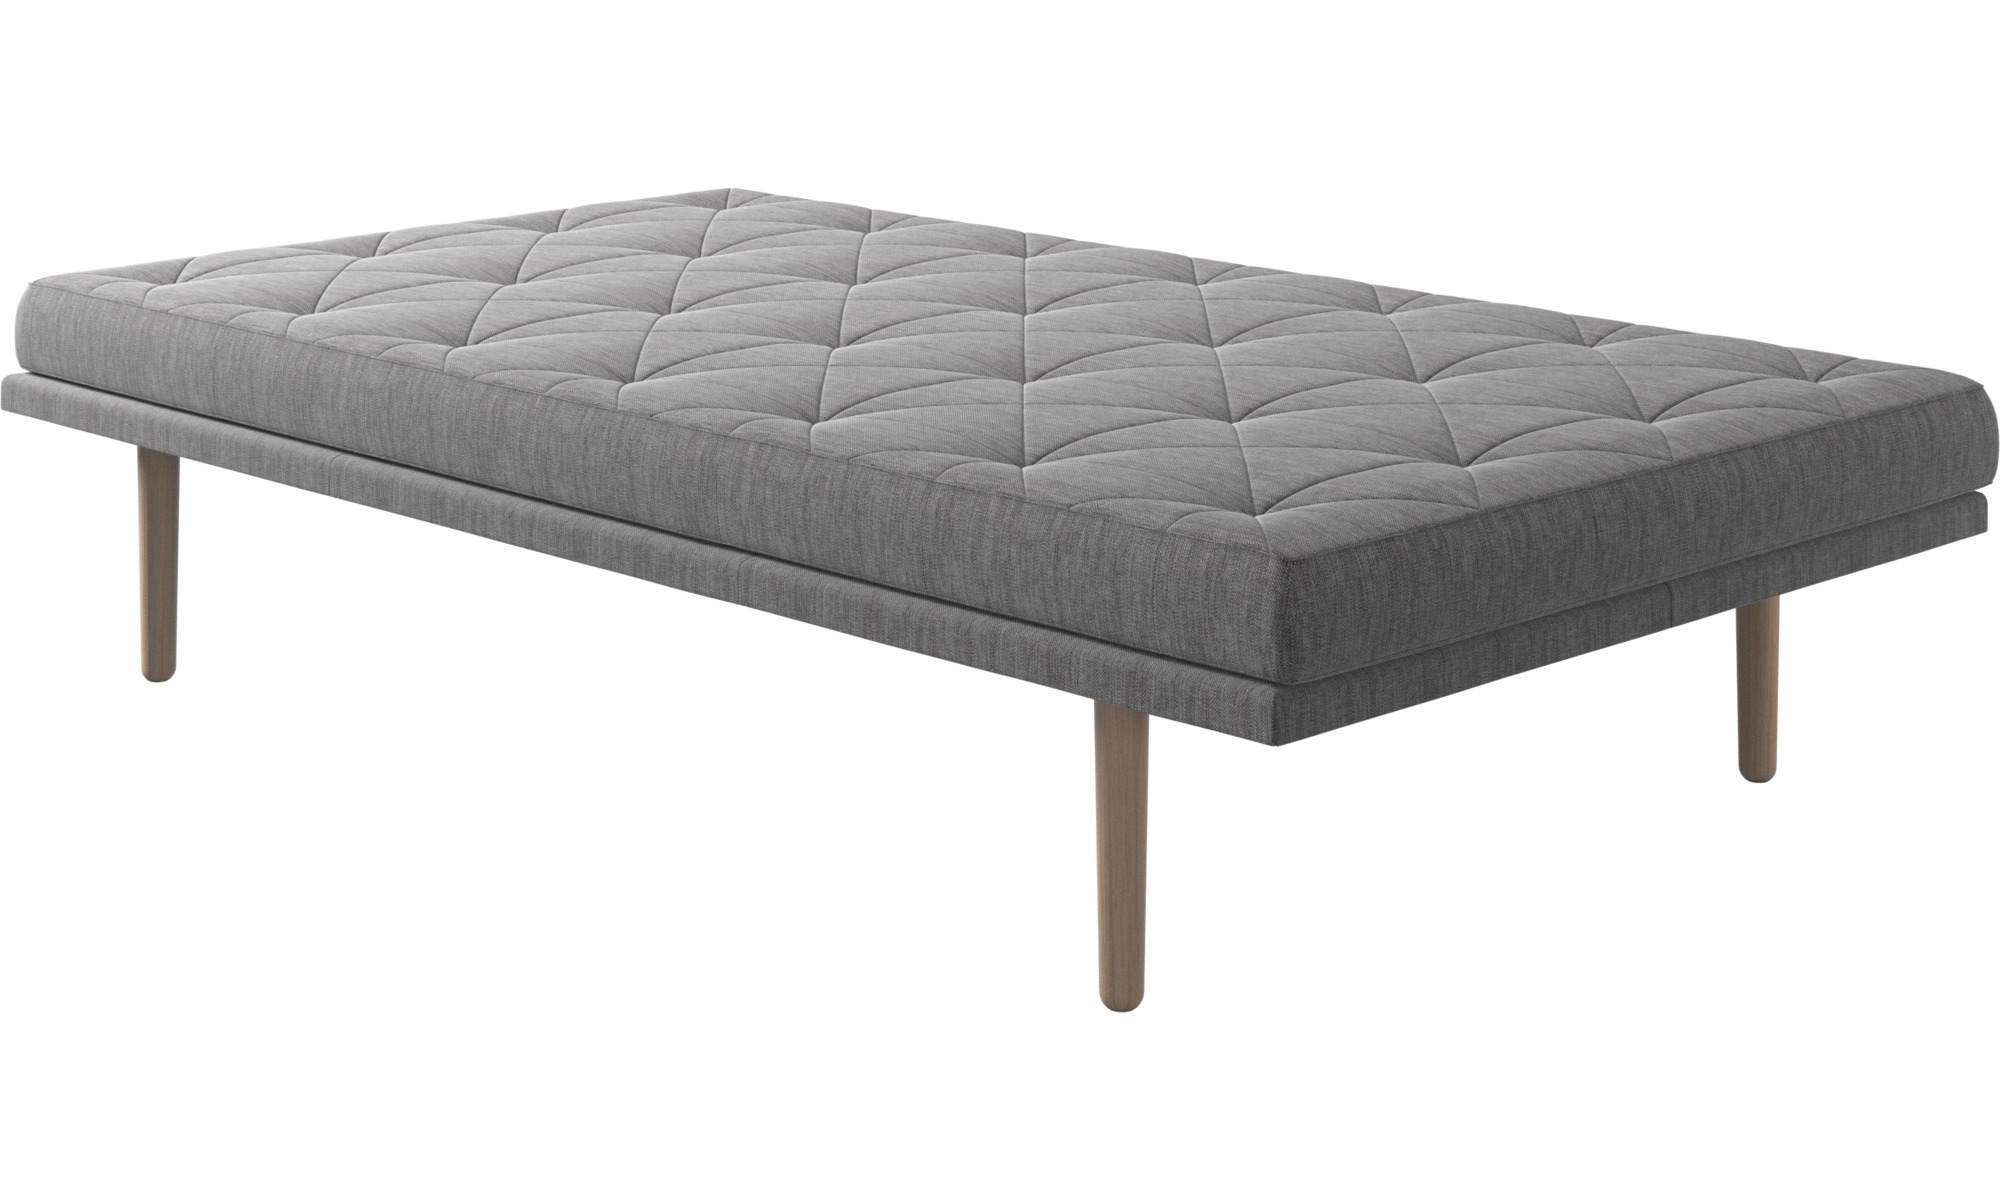 Wondrous Daybeds Fusion Day Bed Boconcept Gmtry Best Dining Table And Chair Ideas Images Gmtryco